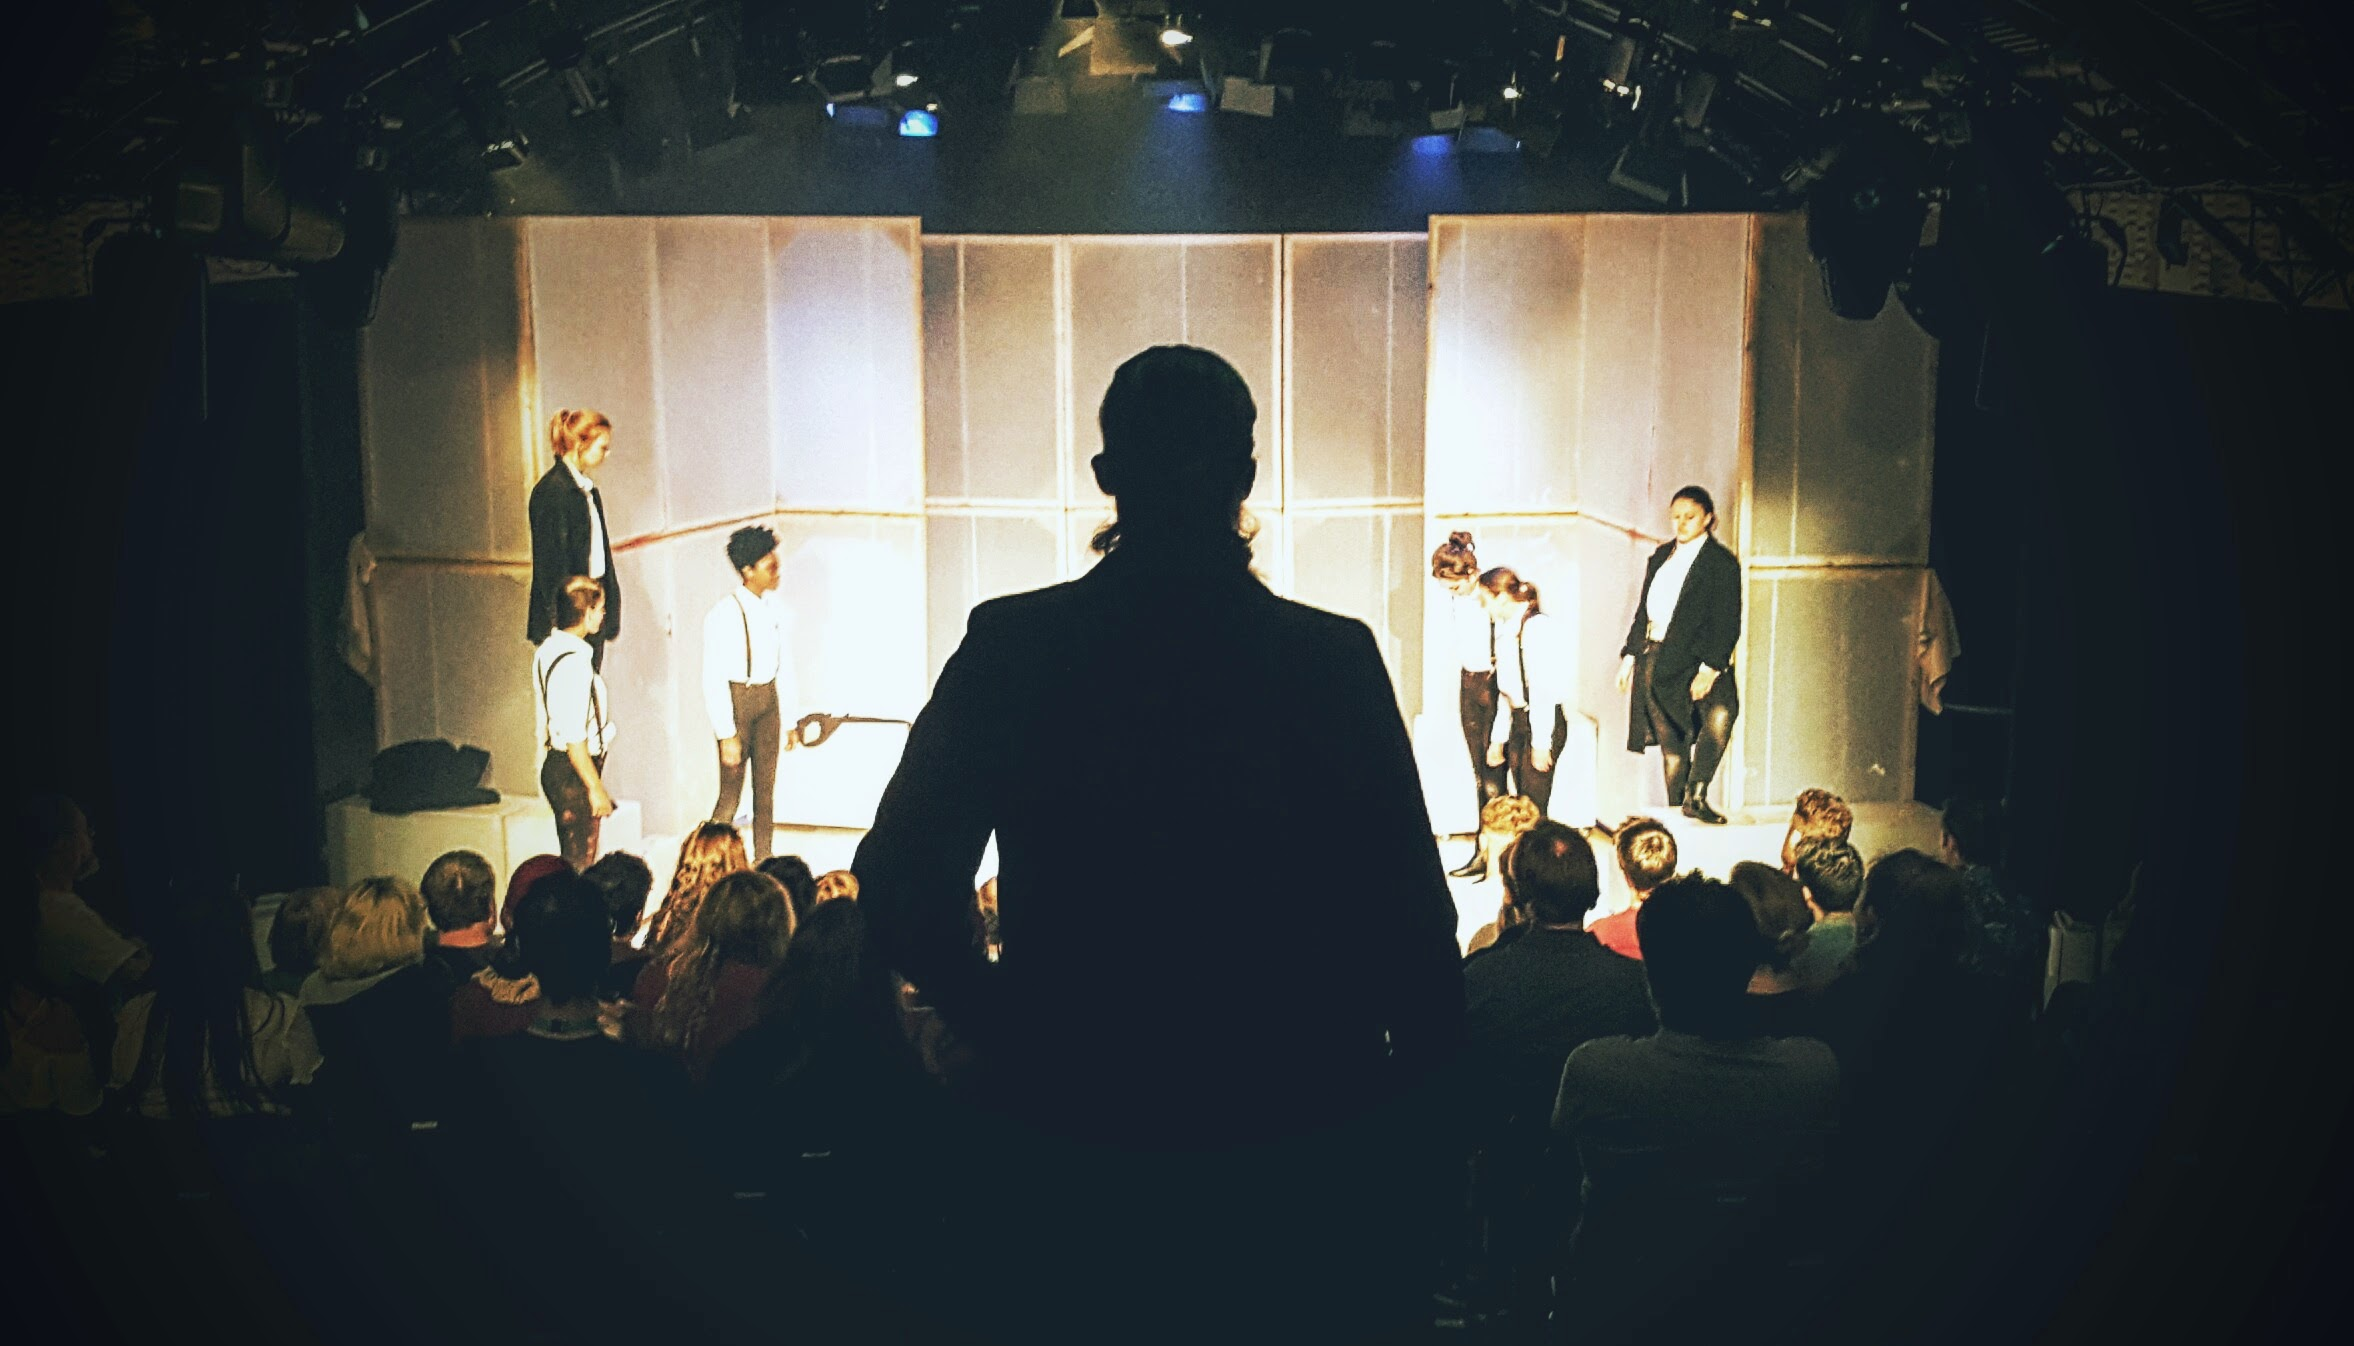 Edinburgh Fringe Update (and recommended shows)